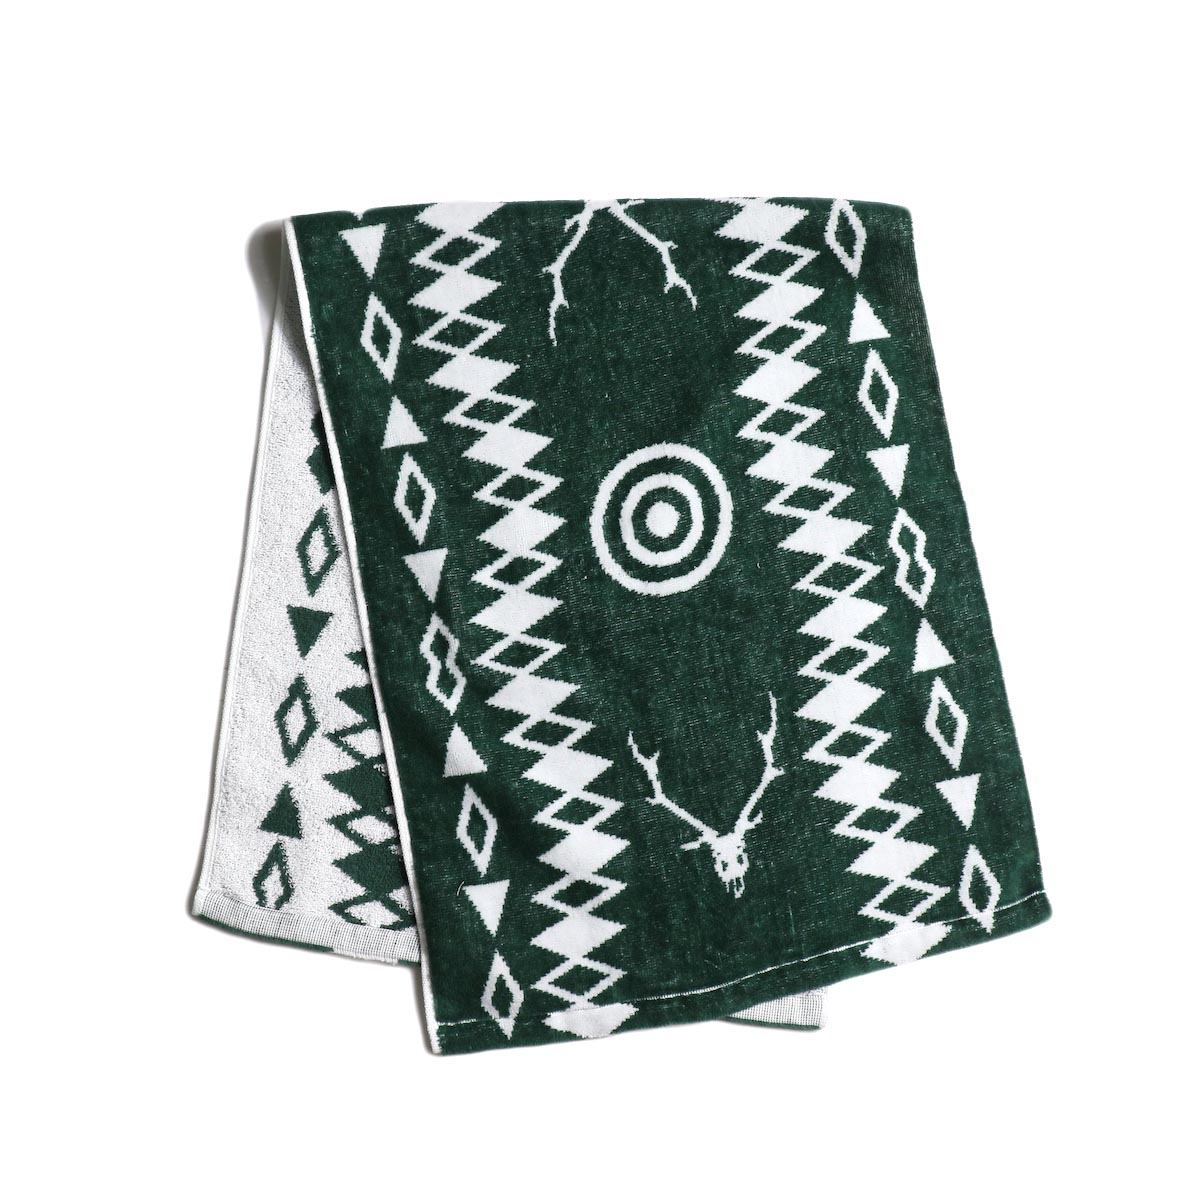 South2 West8 / Face Towel -Cotton Jacquard (Target & Skull) 正面